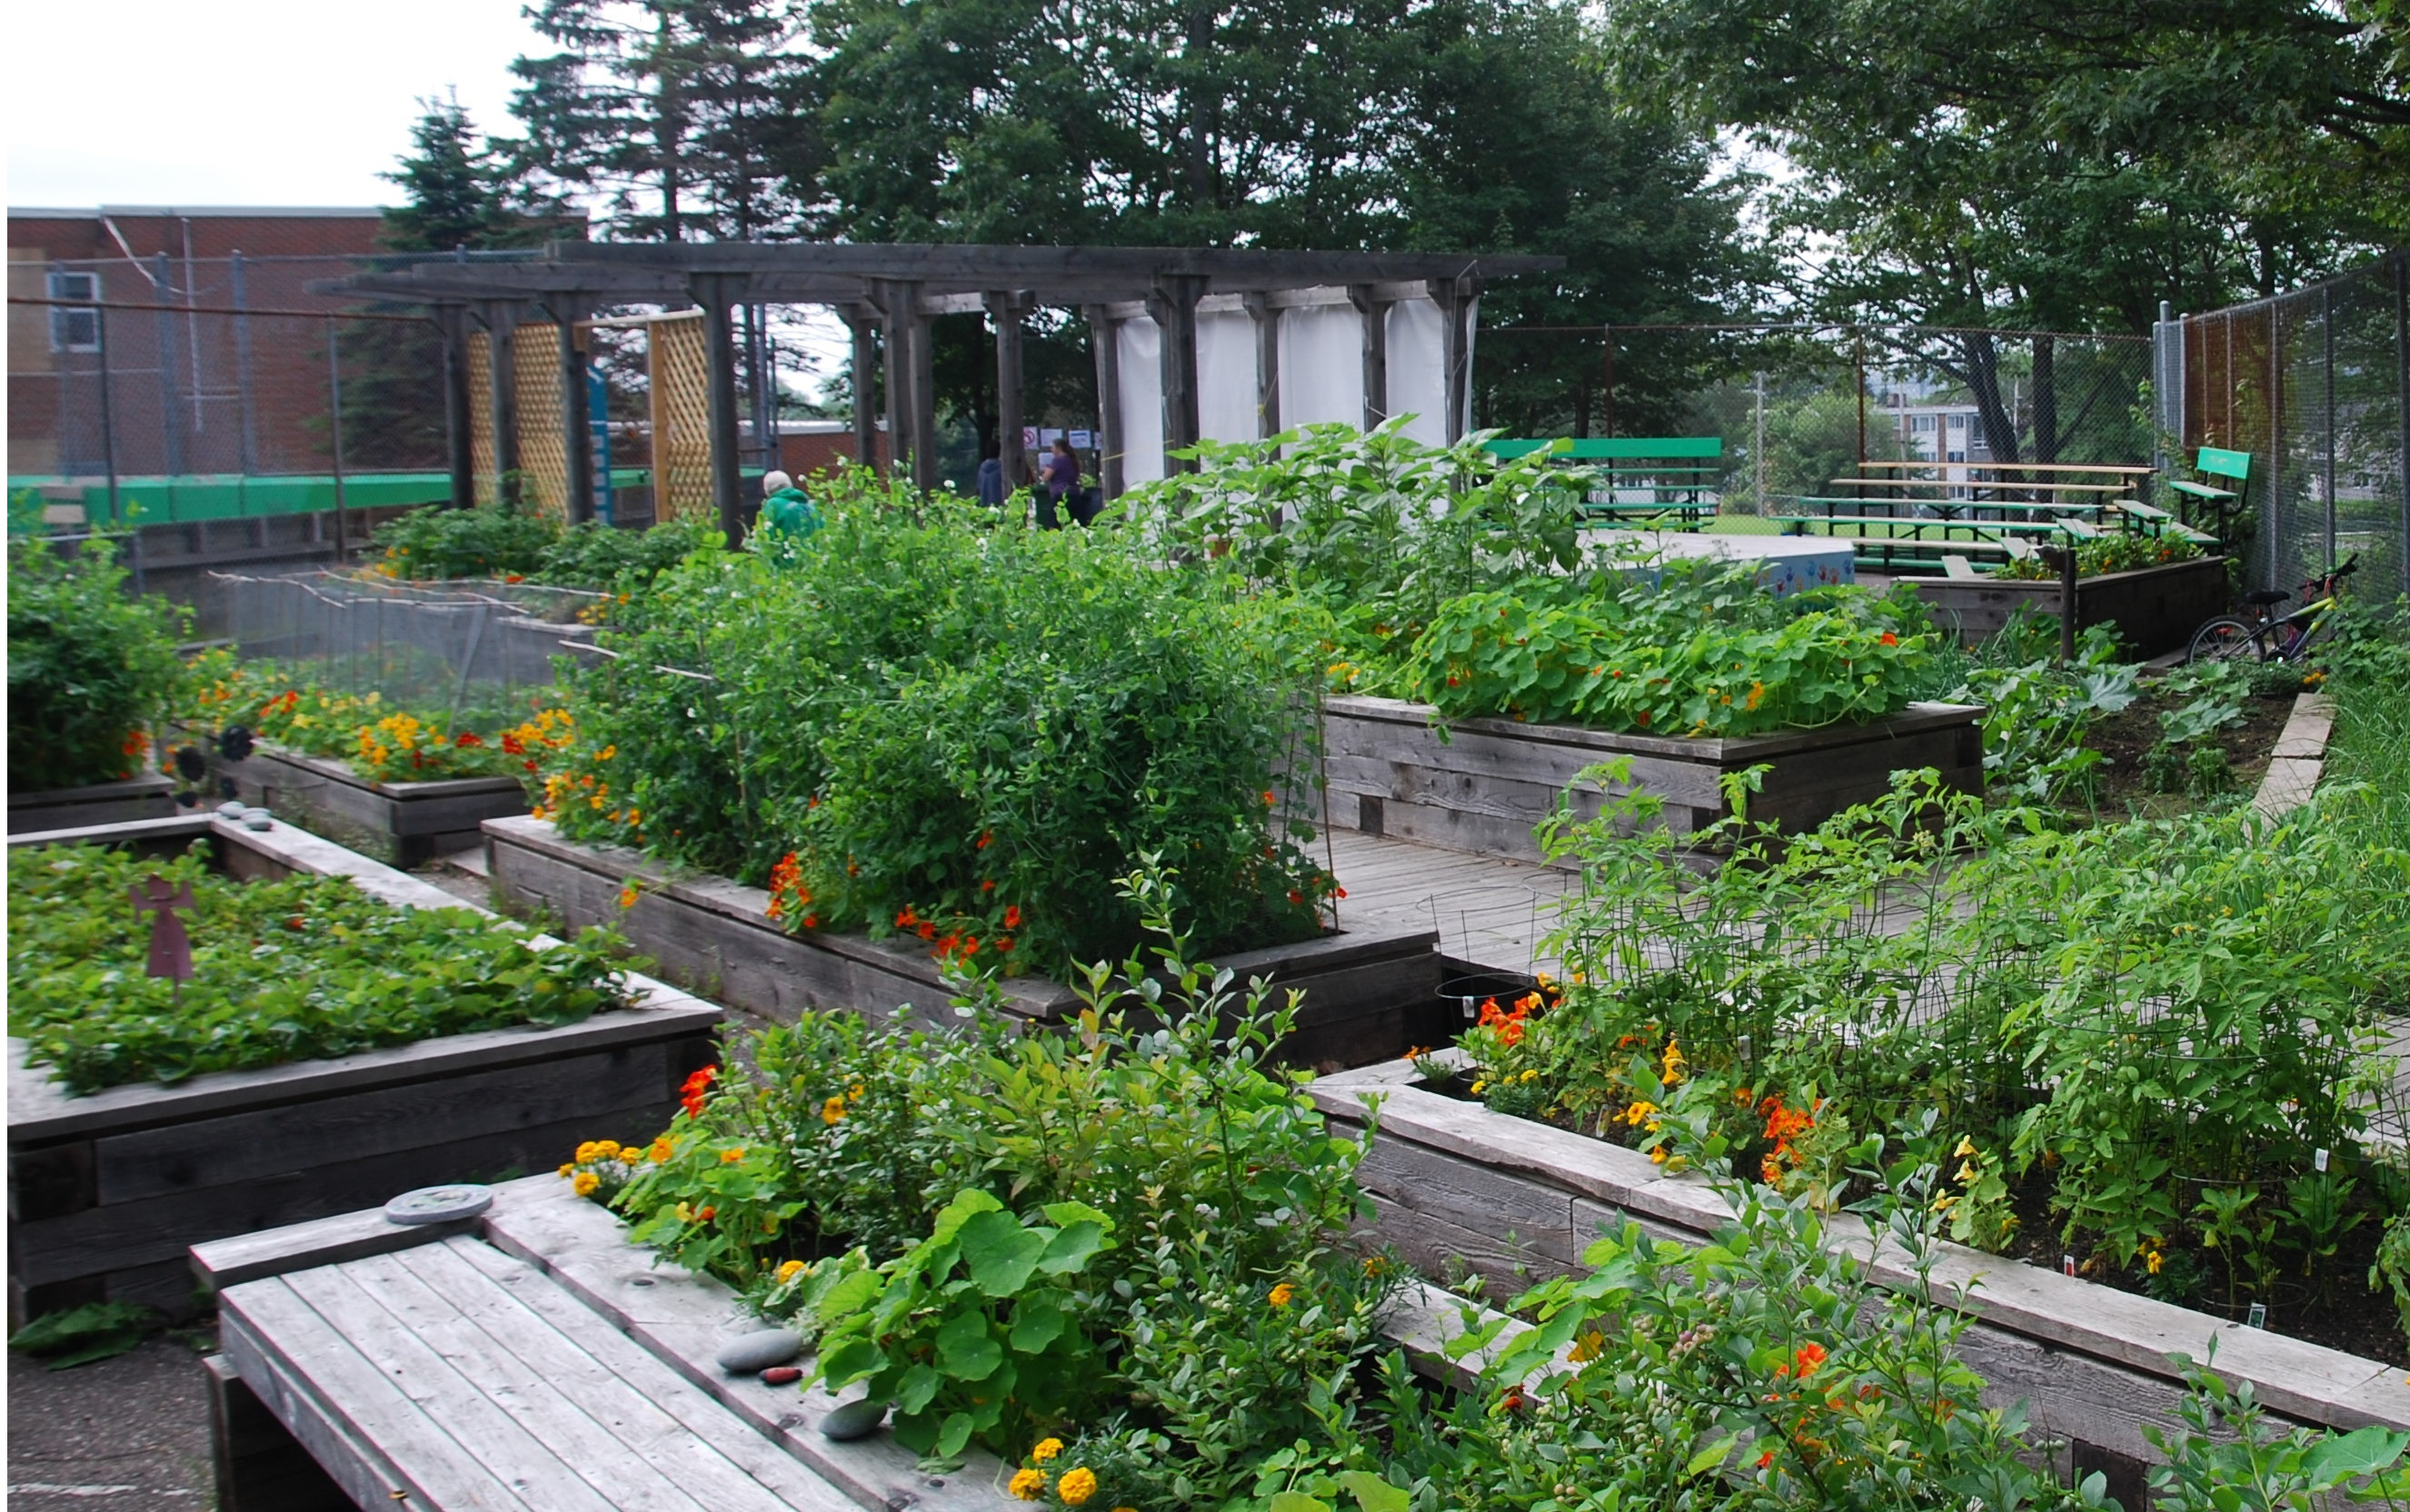 The Take Action Society community garden in Dartmouth North